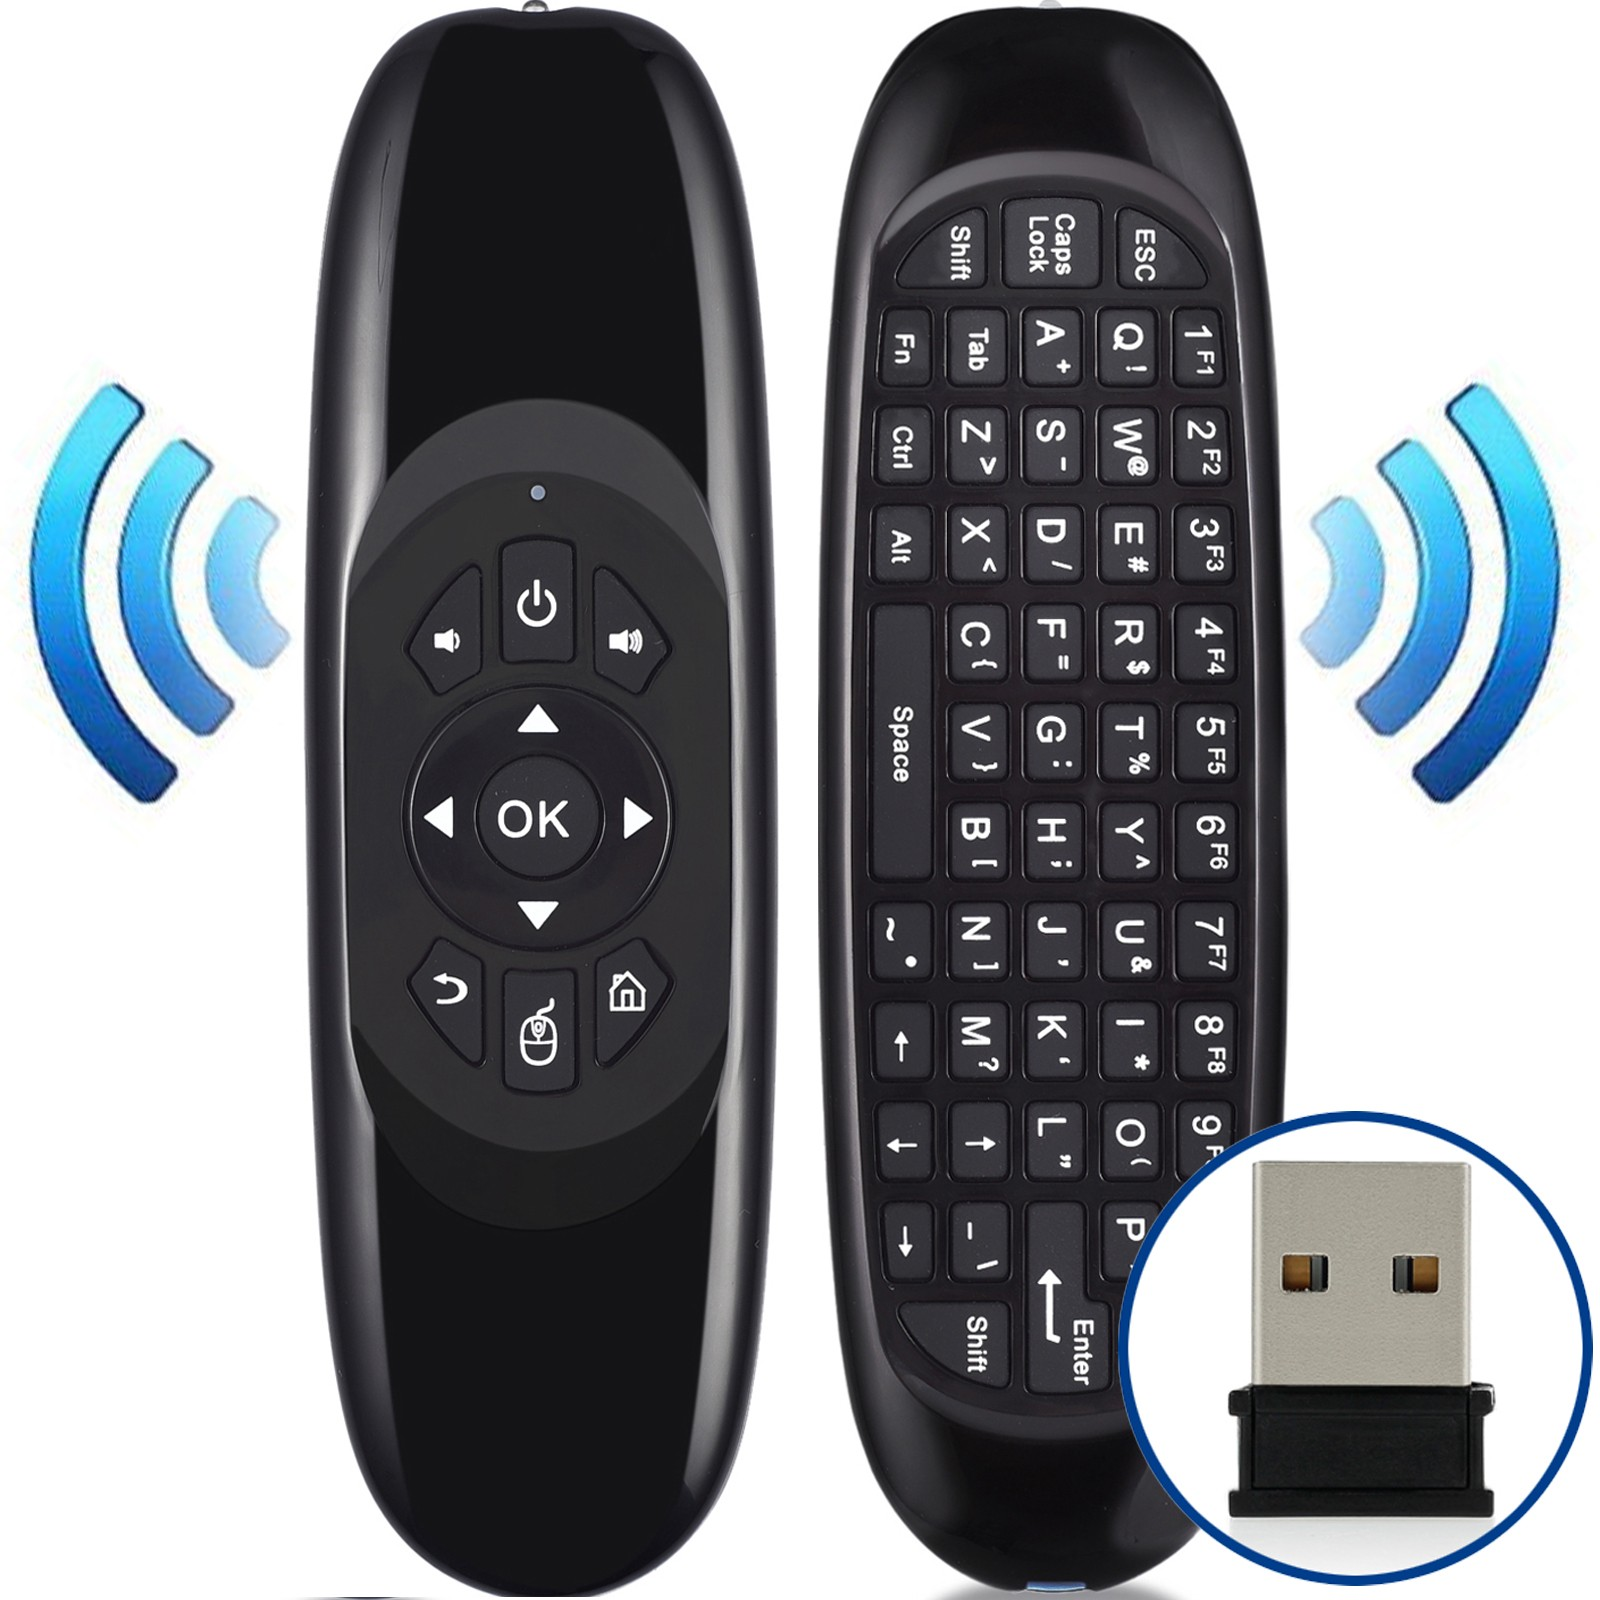 Air Mouse Remote Keyboard Wireless Keyboard Mouse Remote Control 6-Axis Gyroscope USB 2.0 Receiver 2.4G Wireless Mini Keyboard Mouse for Android Mac OS Windows Linux PC Pad TV STB Game Player